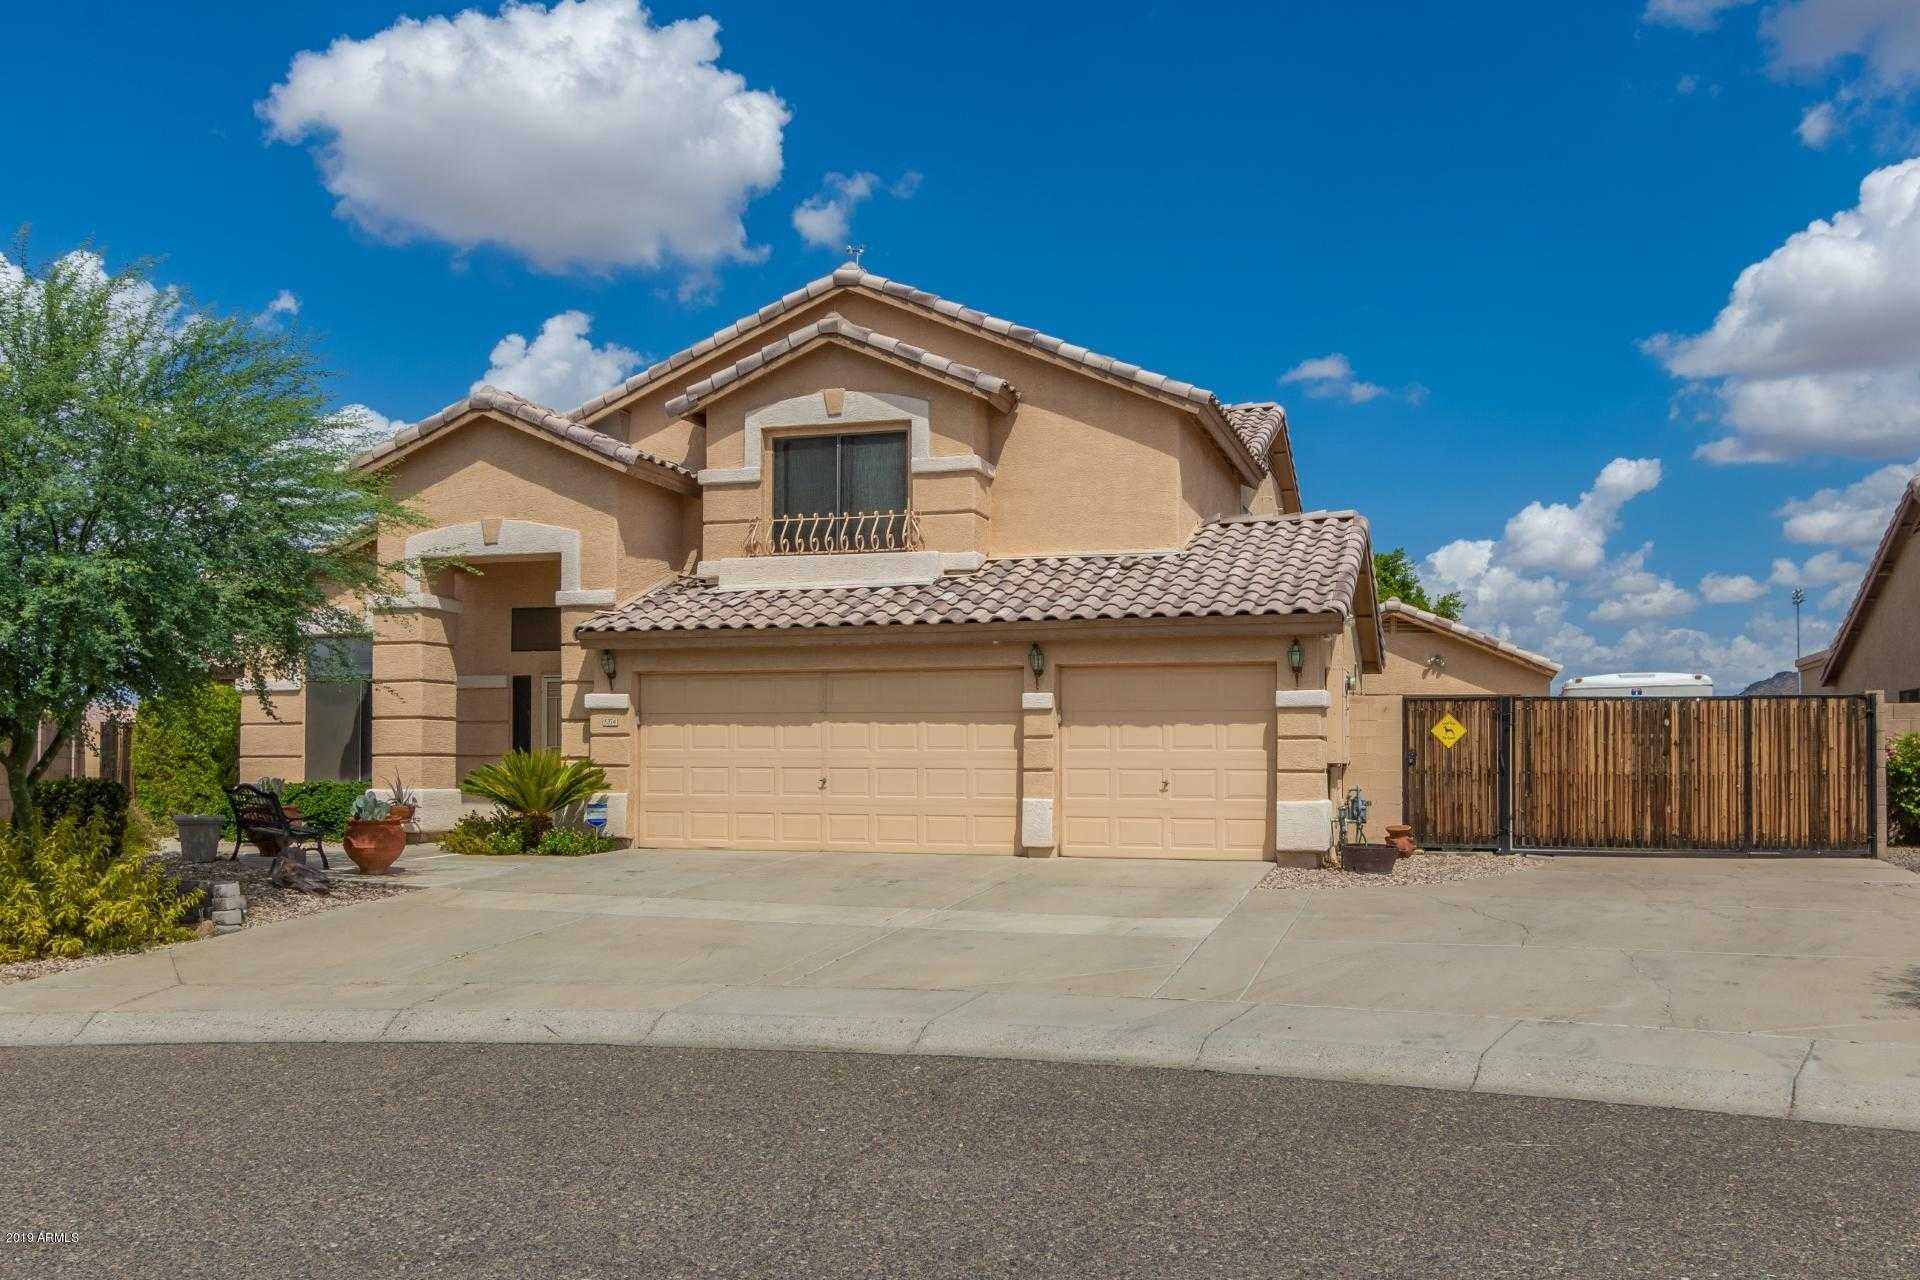 $555,000 - 4Br/4Ba - Home for Sale in Union Hills 2, Glendale